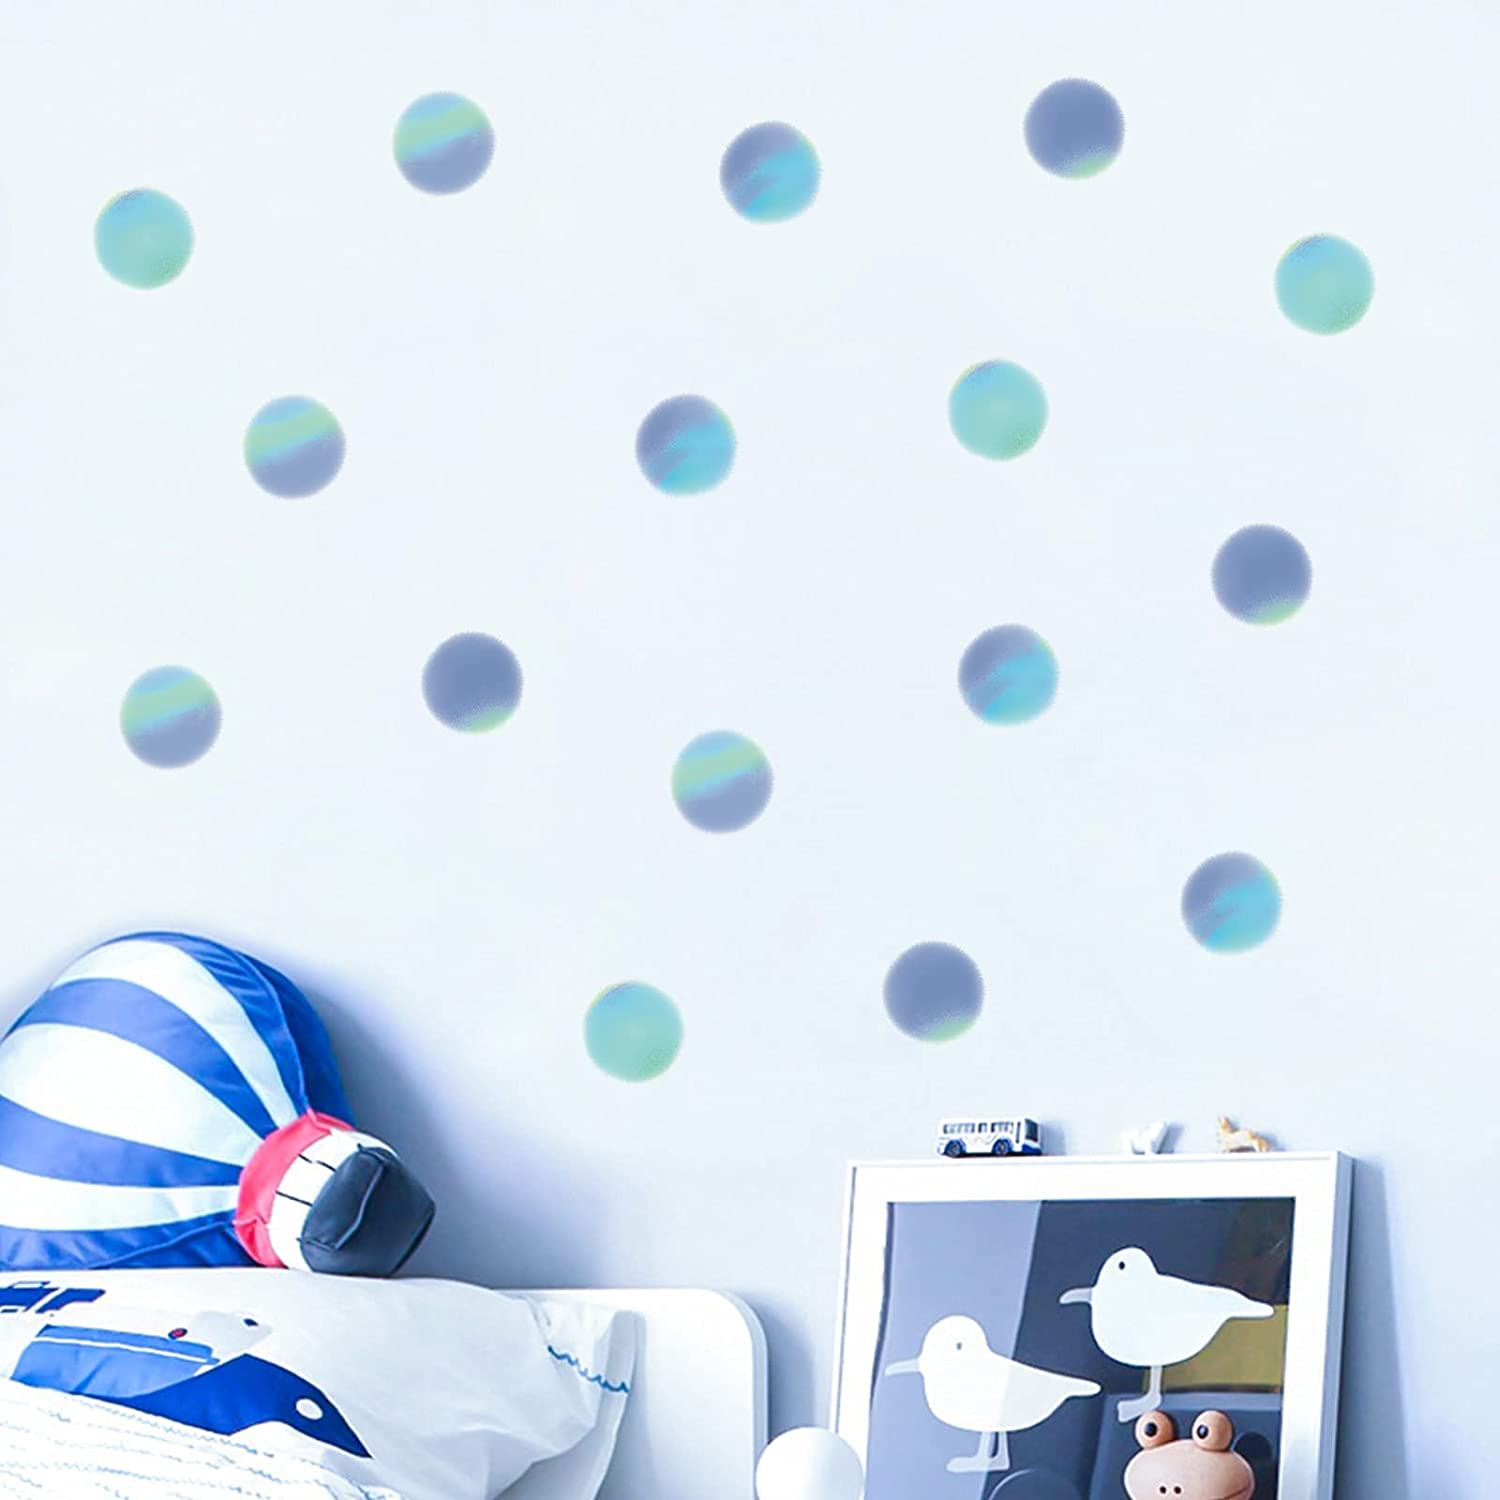 ROFARSO 120 Ranking integrated 1st place Decals 2'' Hazy Gradient Color Dots Polka 2021 new Decal Wall